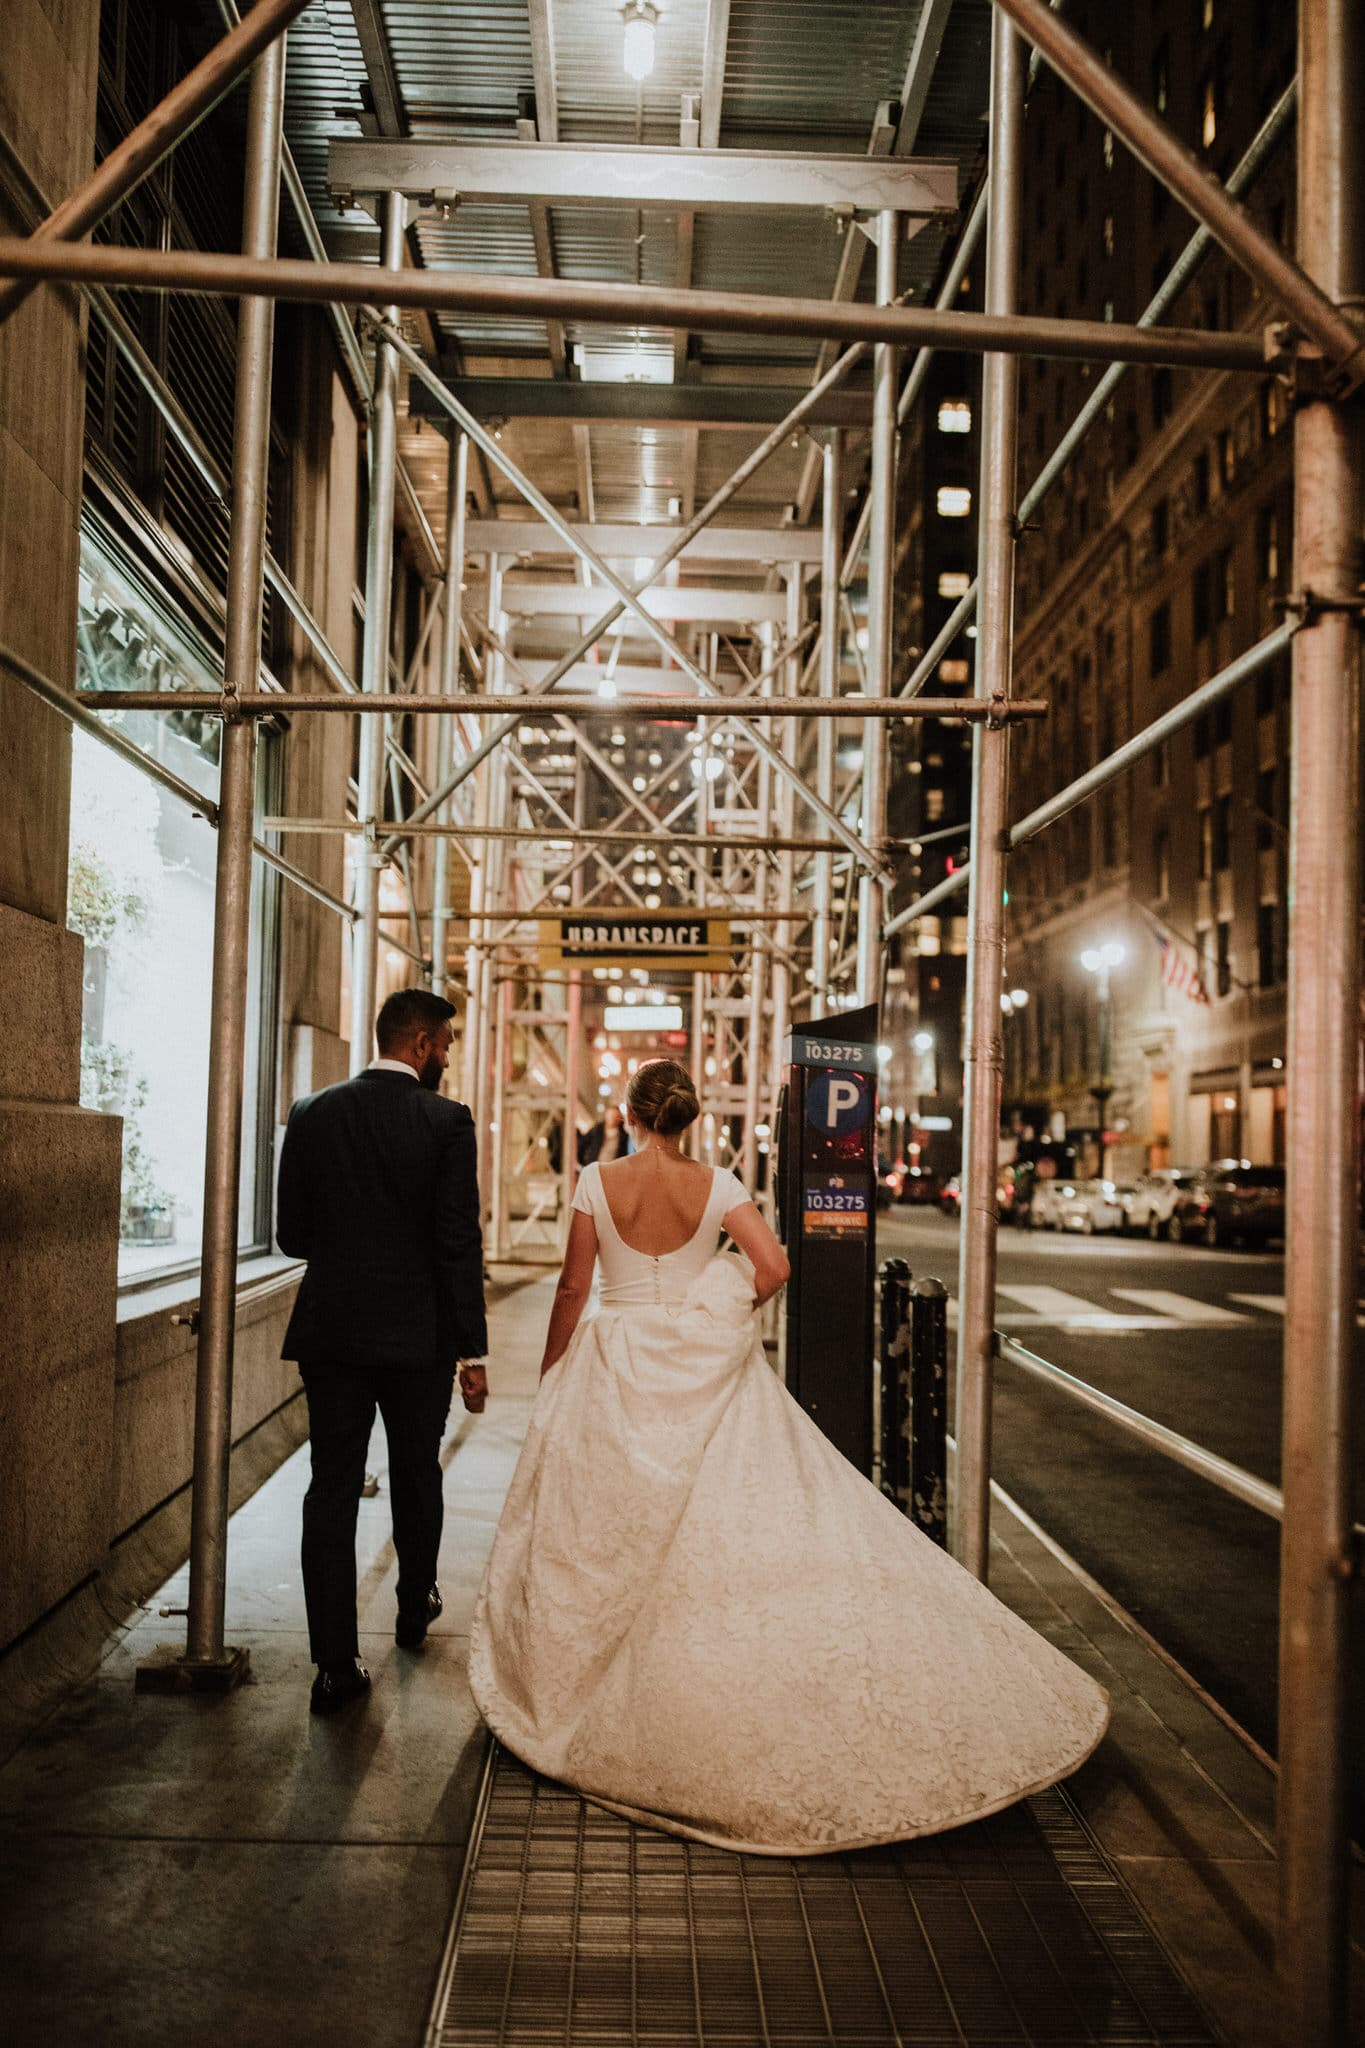 The bride and groom walk the city streets of New York at night. Wedding Photographer Brent Calis.